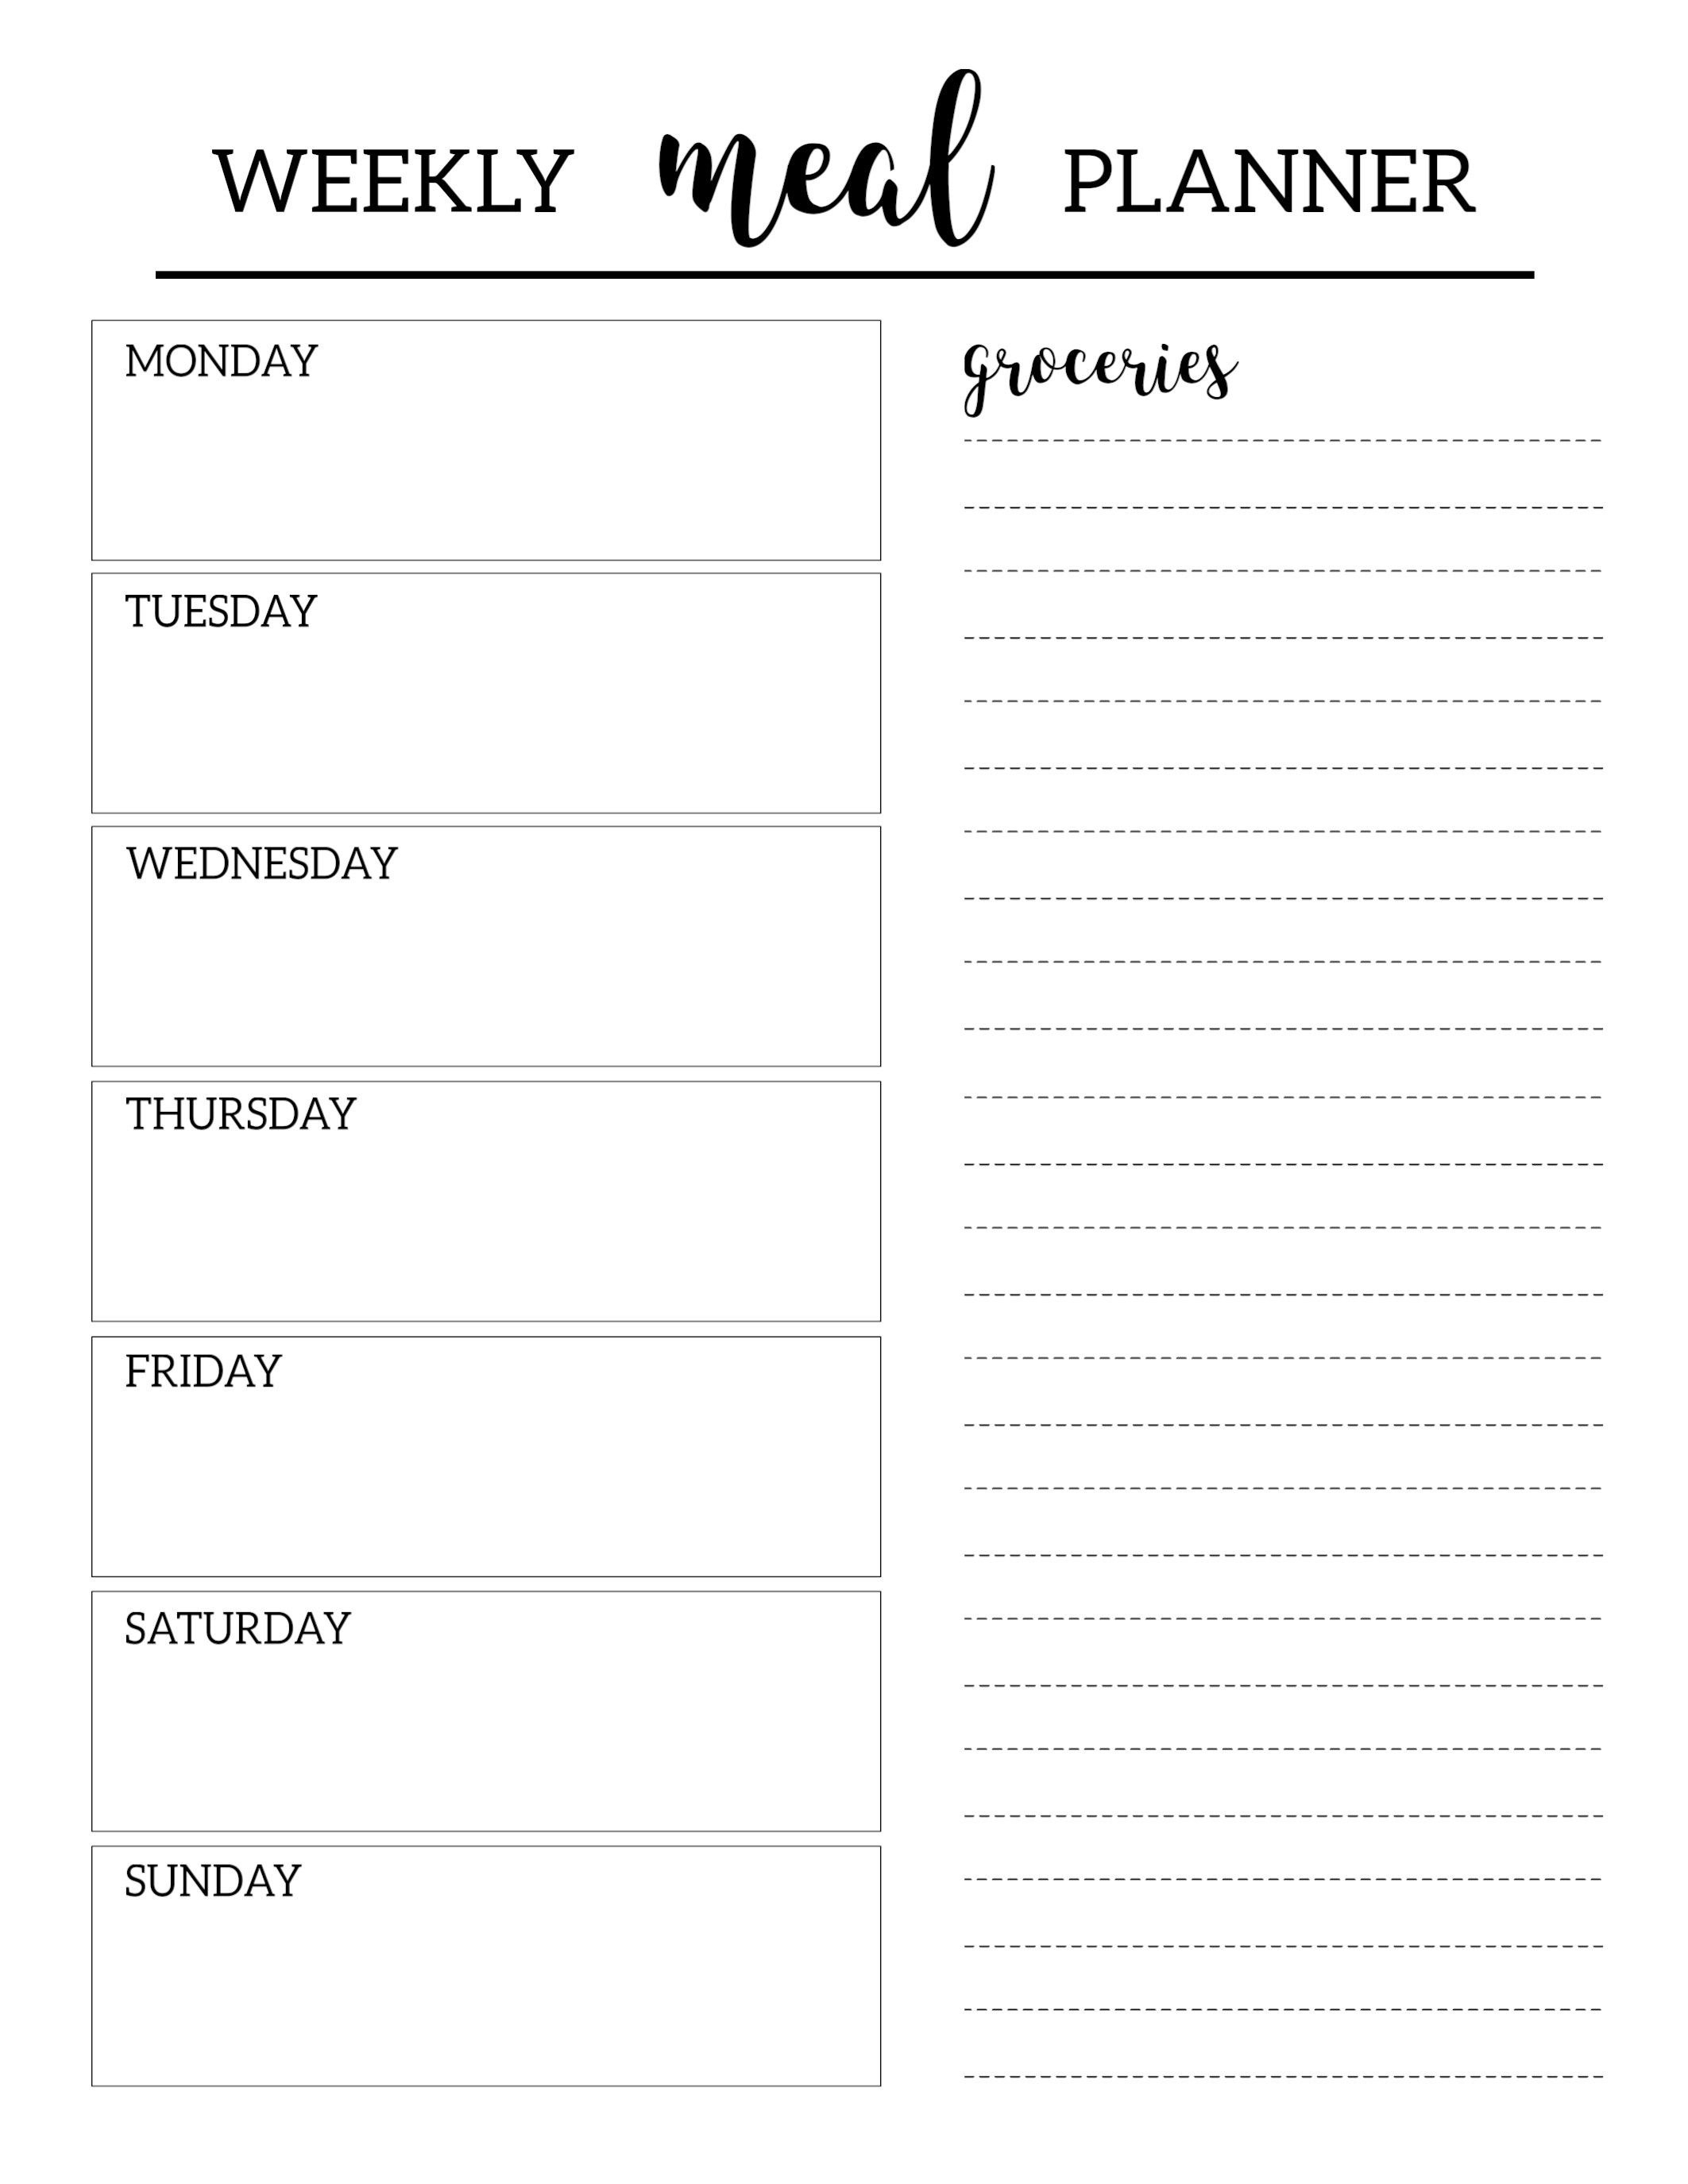 Plans Meal Planning Grocery List Top Template Plan Templates Pertaining To Menu Planner With Grocery List Template